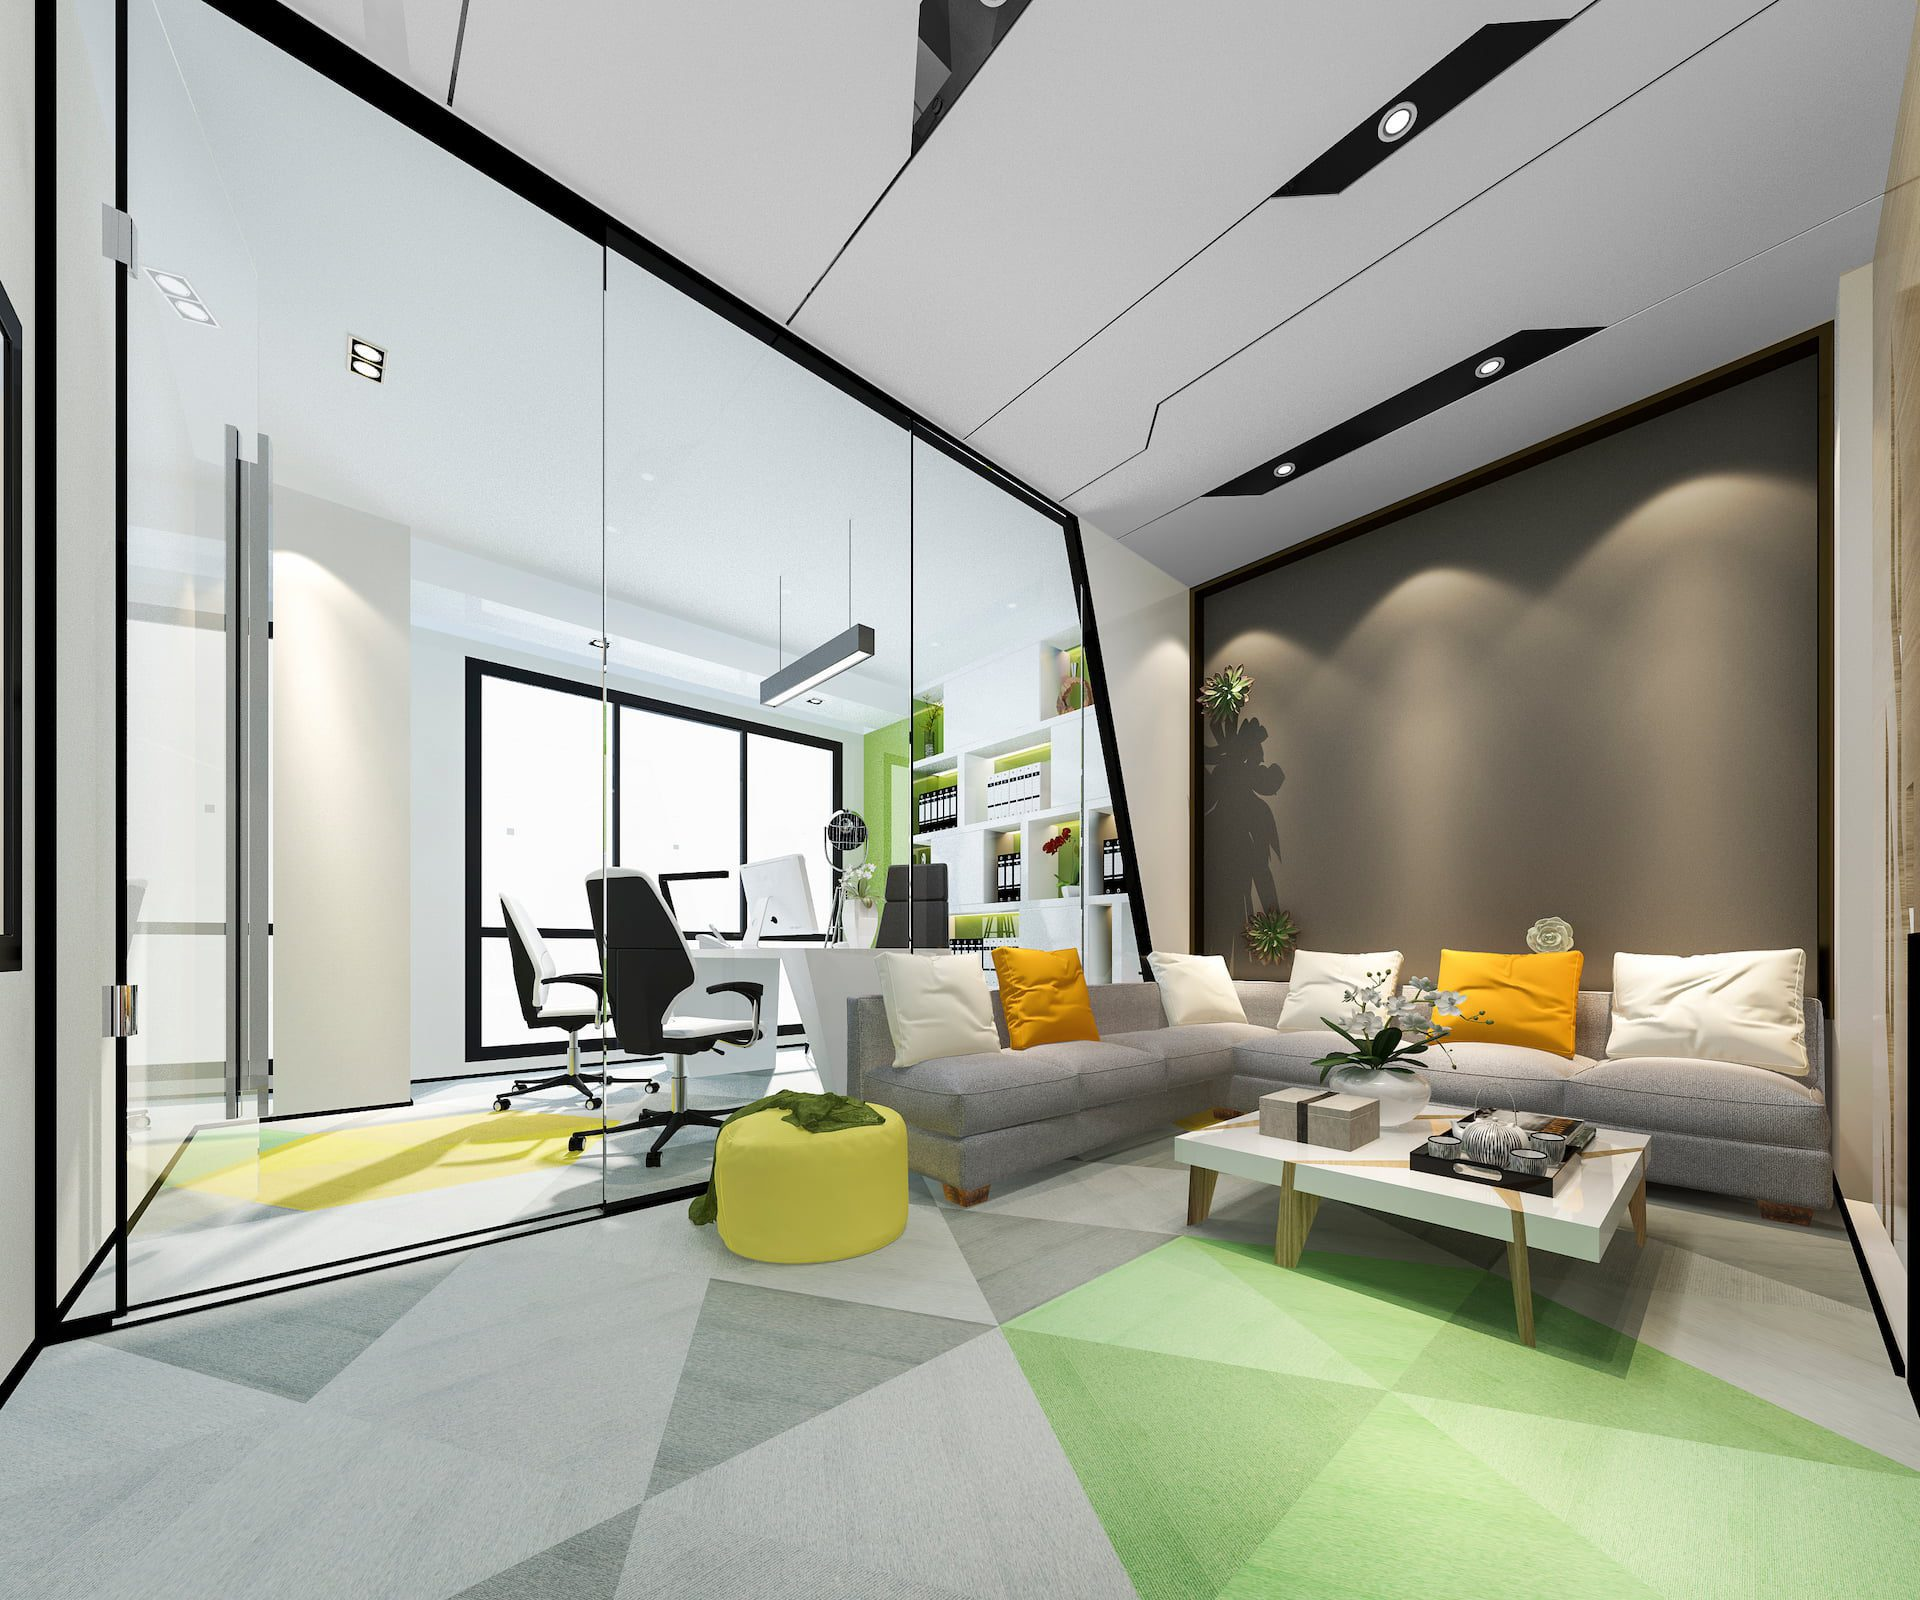 rendering of executive office